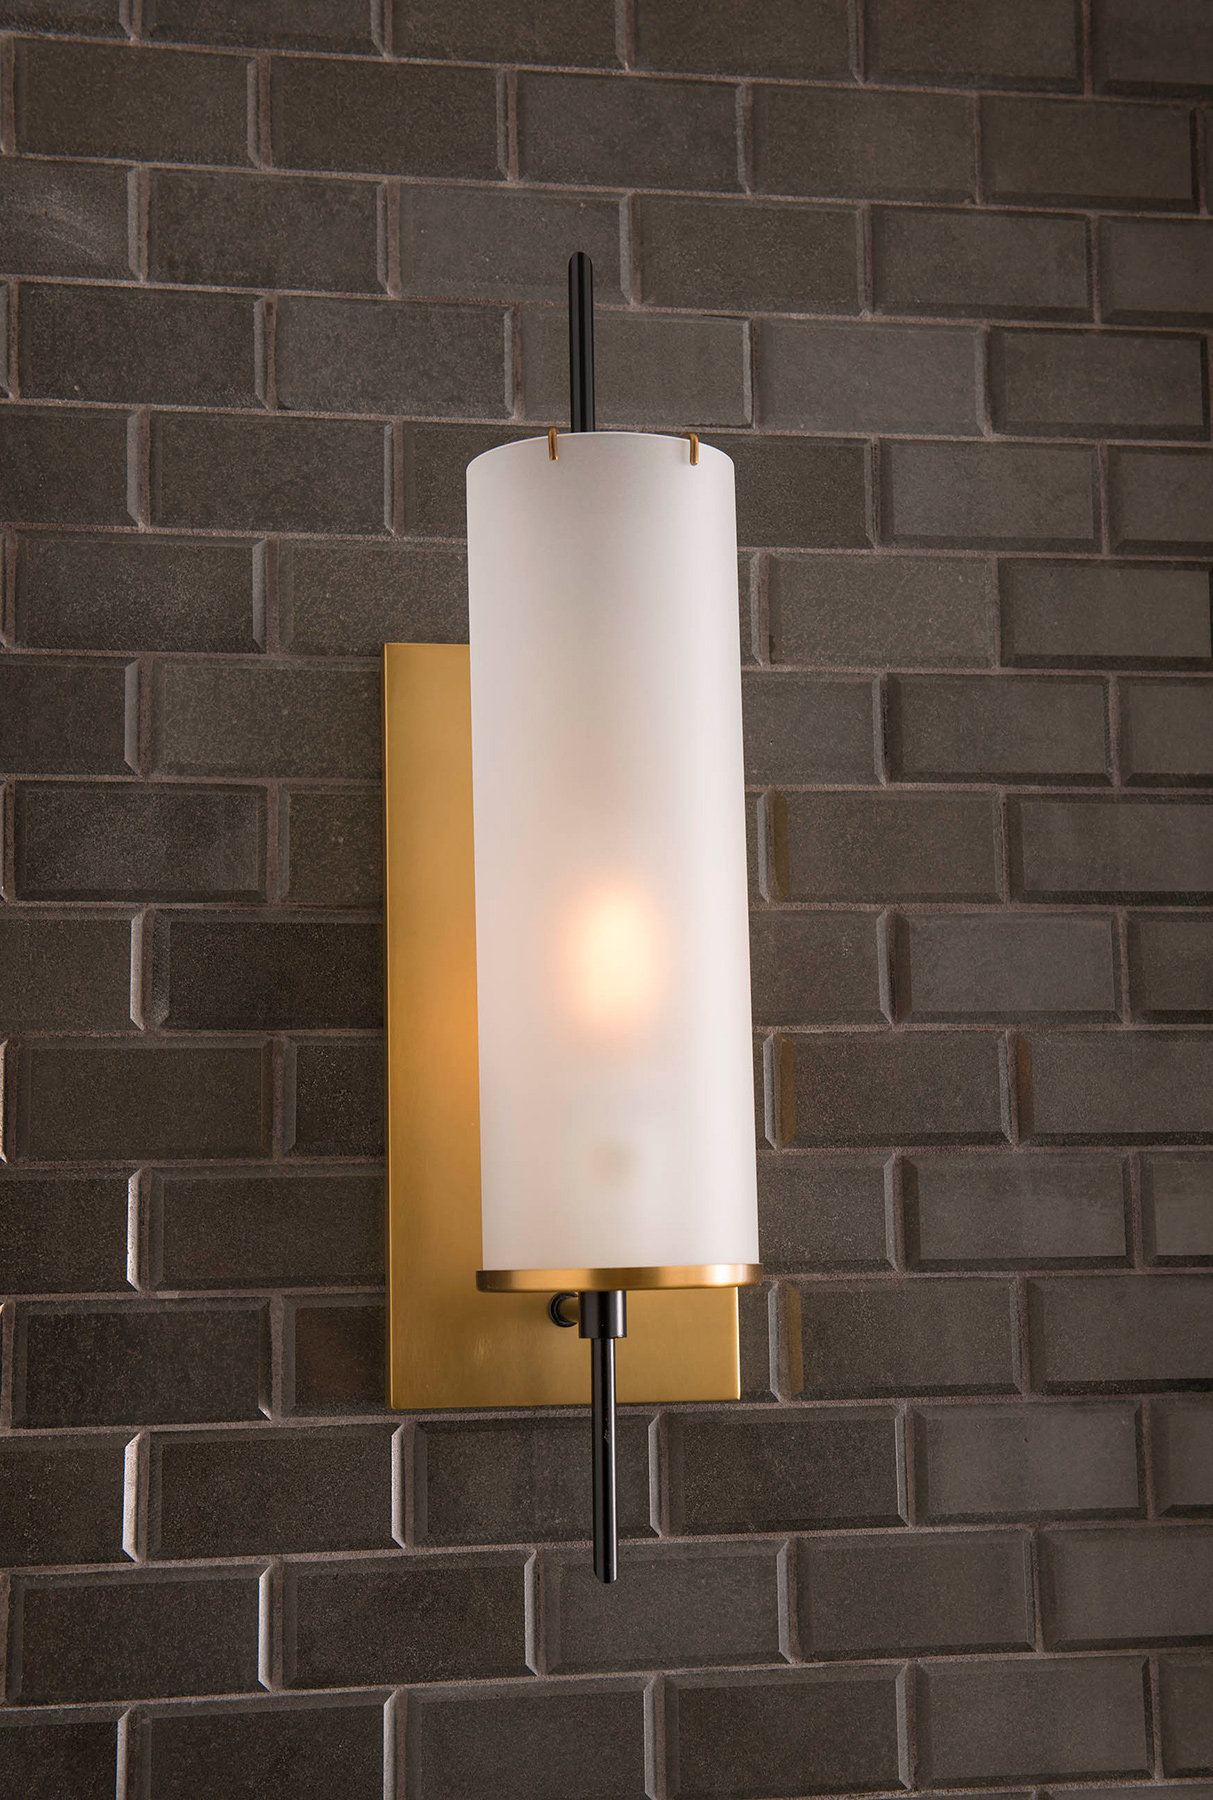 His-masterbath-sconce